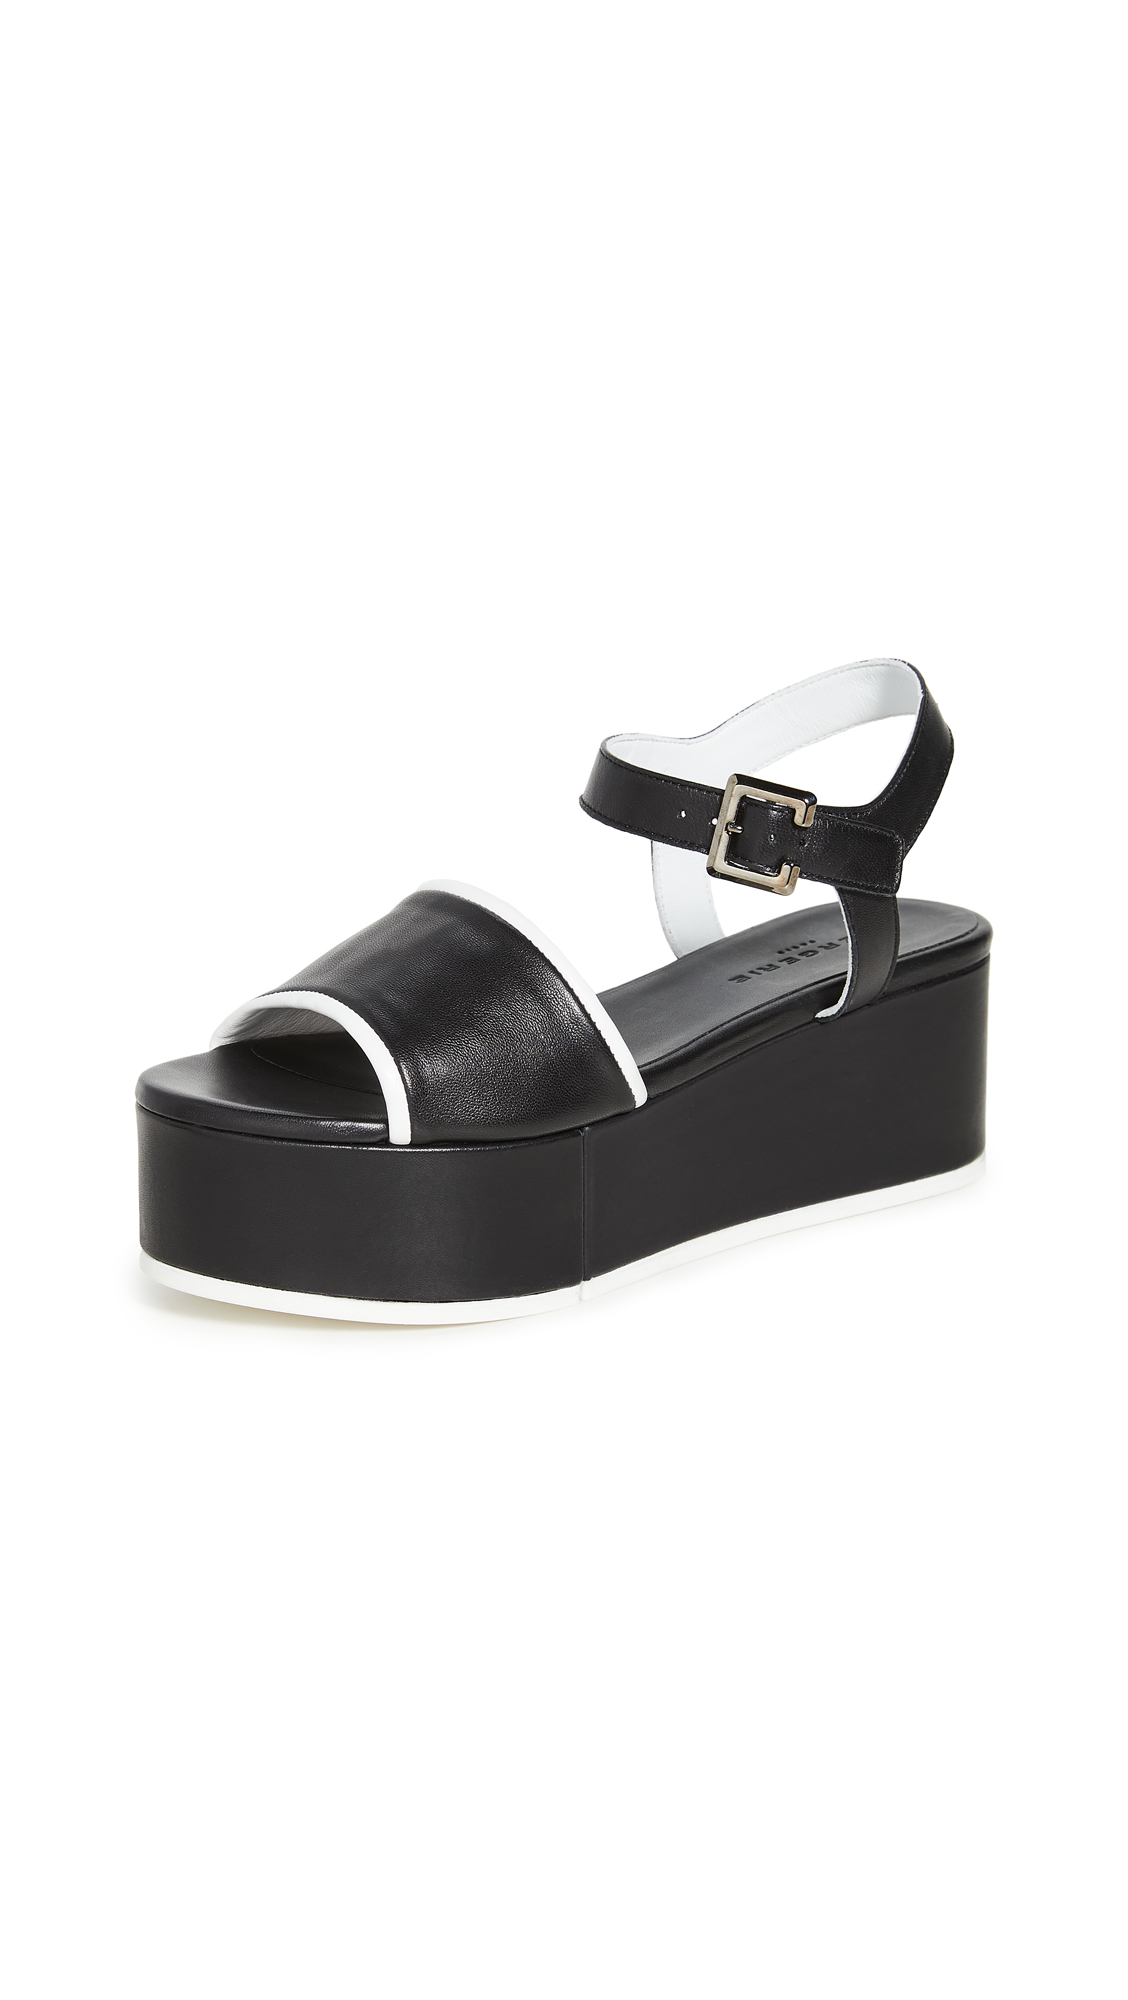 Buy Clergerie Mori Platform Sandals online, shop Clergerie